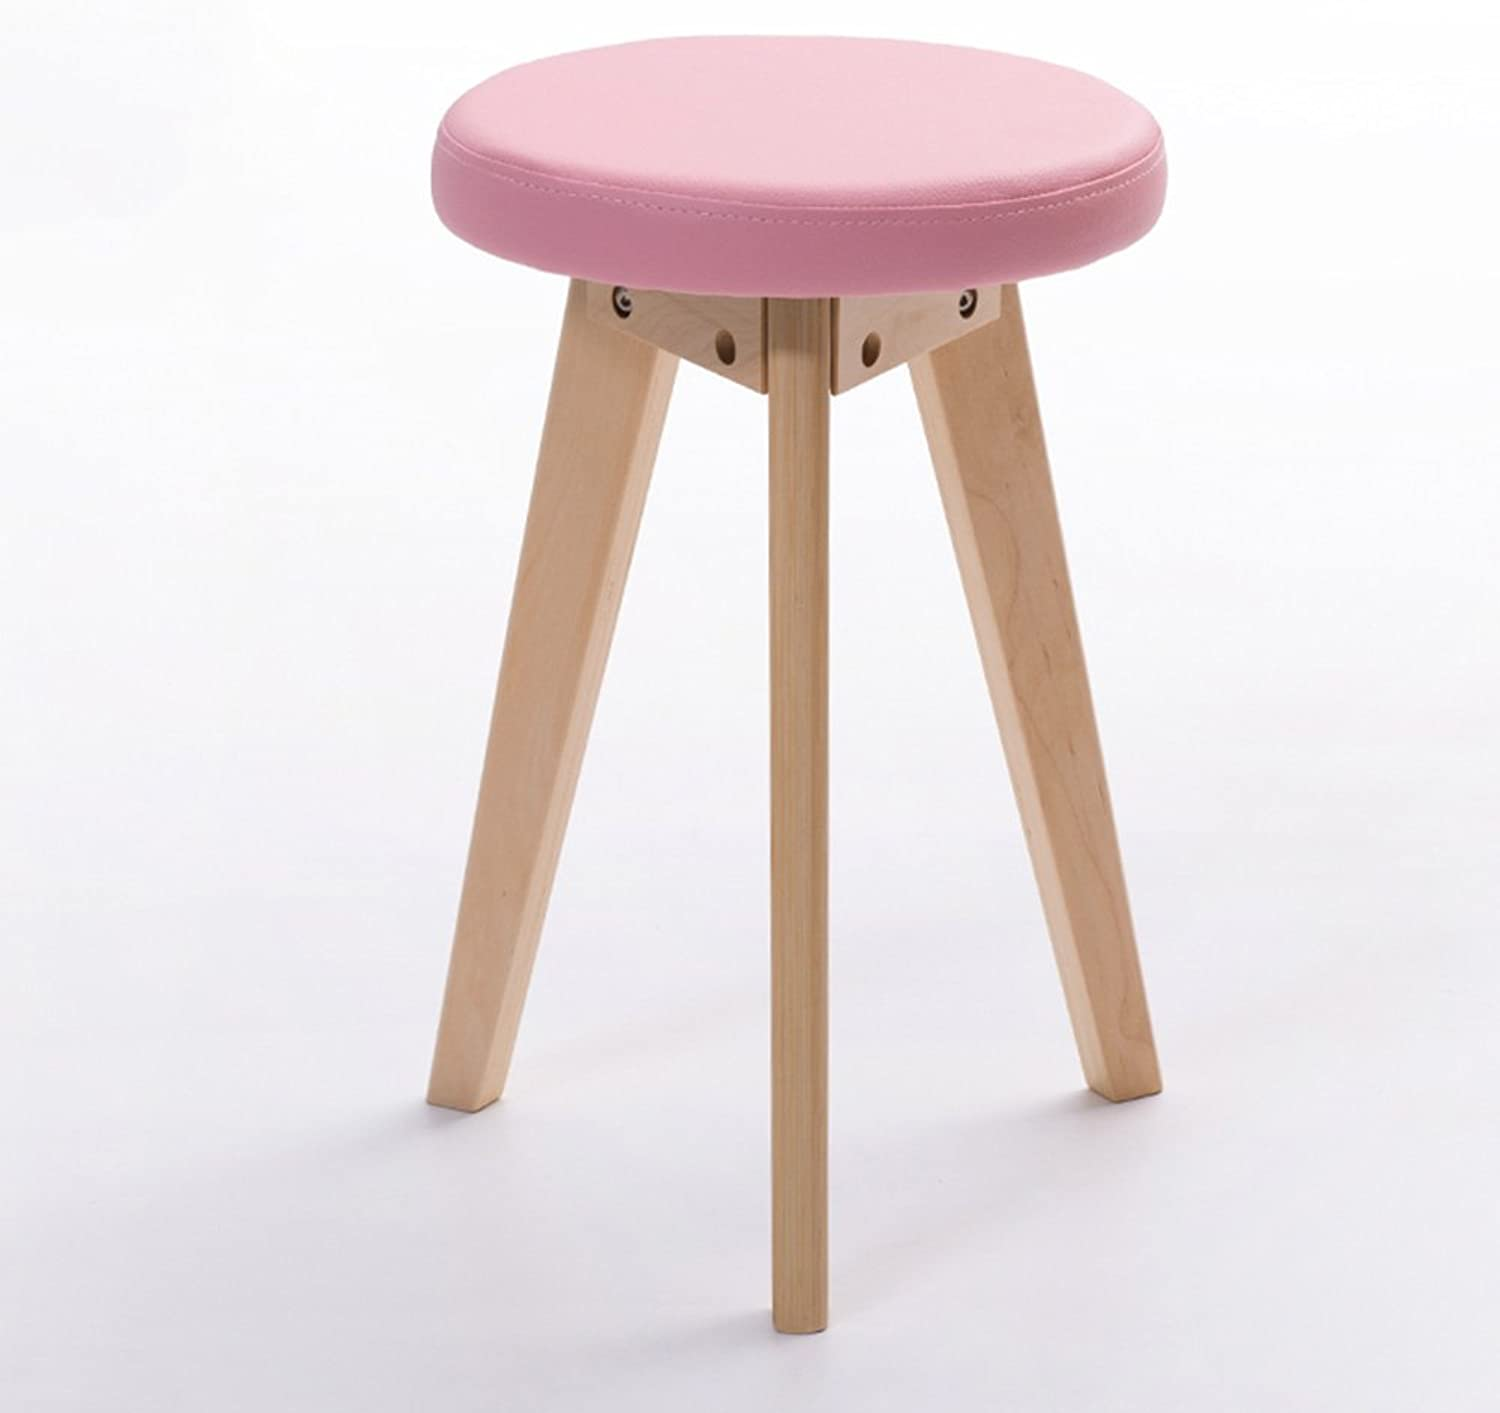 MEIDUO Chairs Housewares Rubberwood Round Stool PVC Cushion Dressing Stool in 5 colors (color   Pink, Size   A)